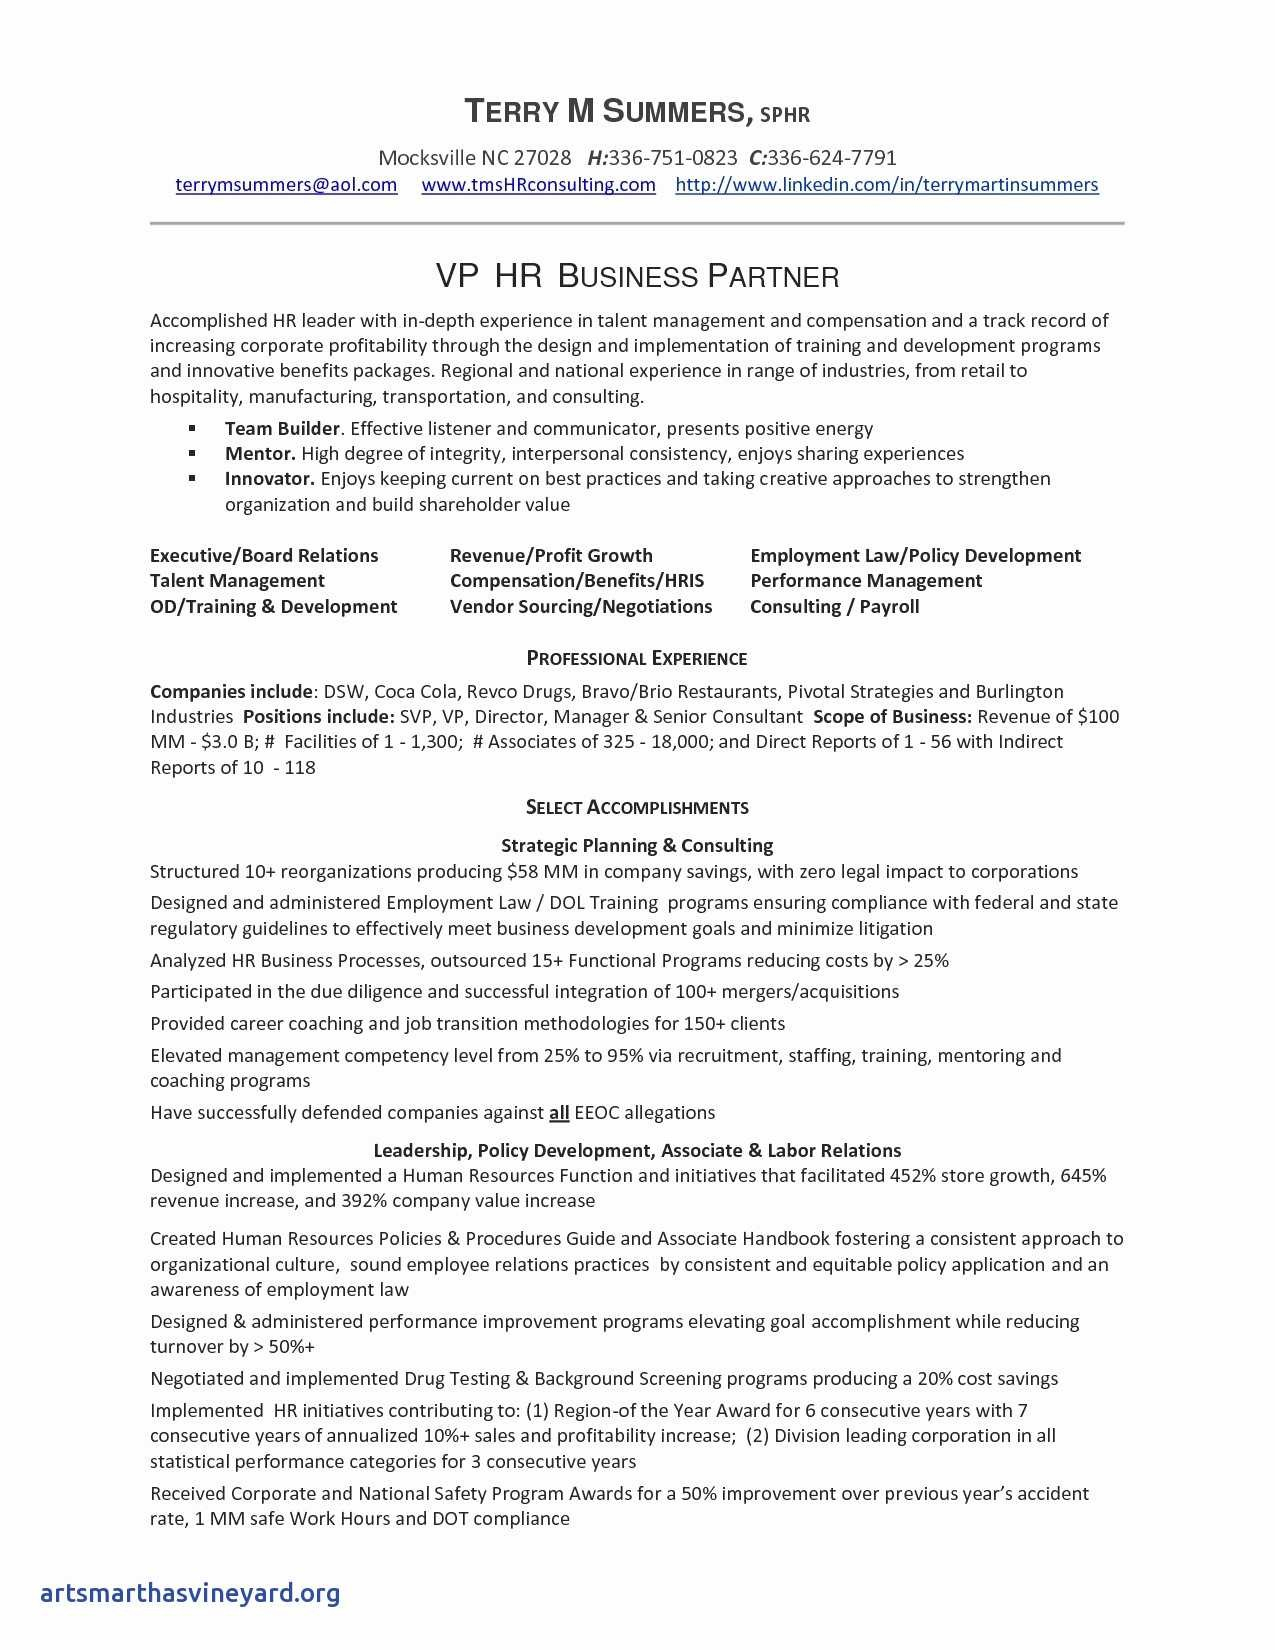 Retail Resume No Experience - Retail Resume No Experience